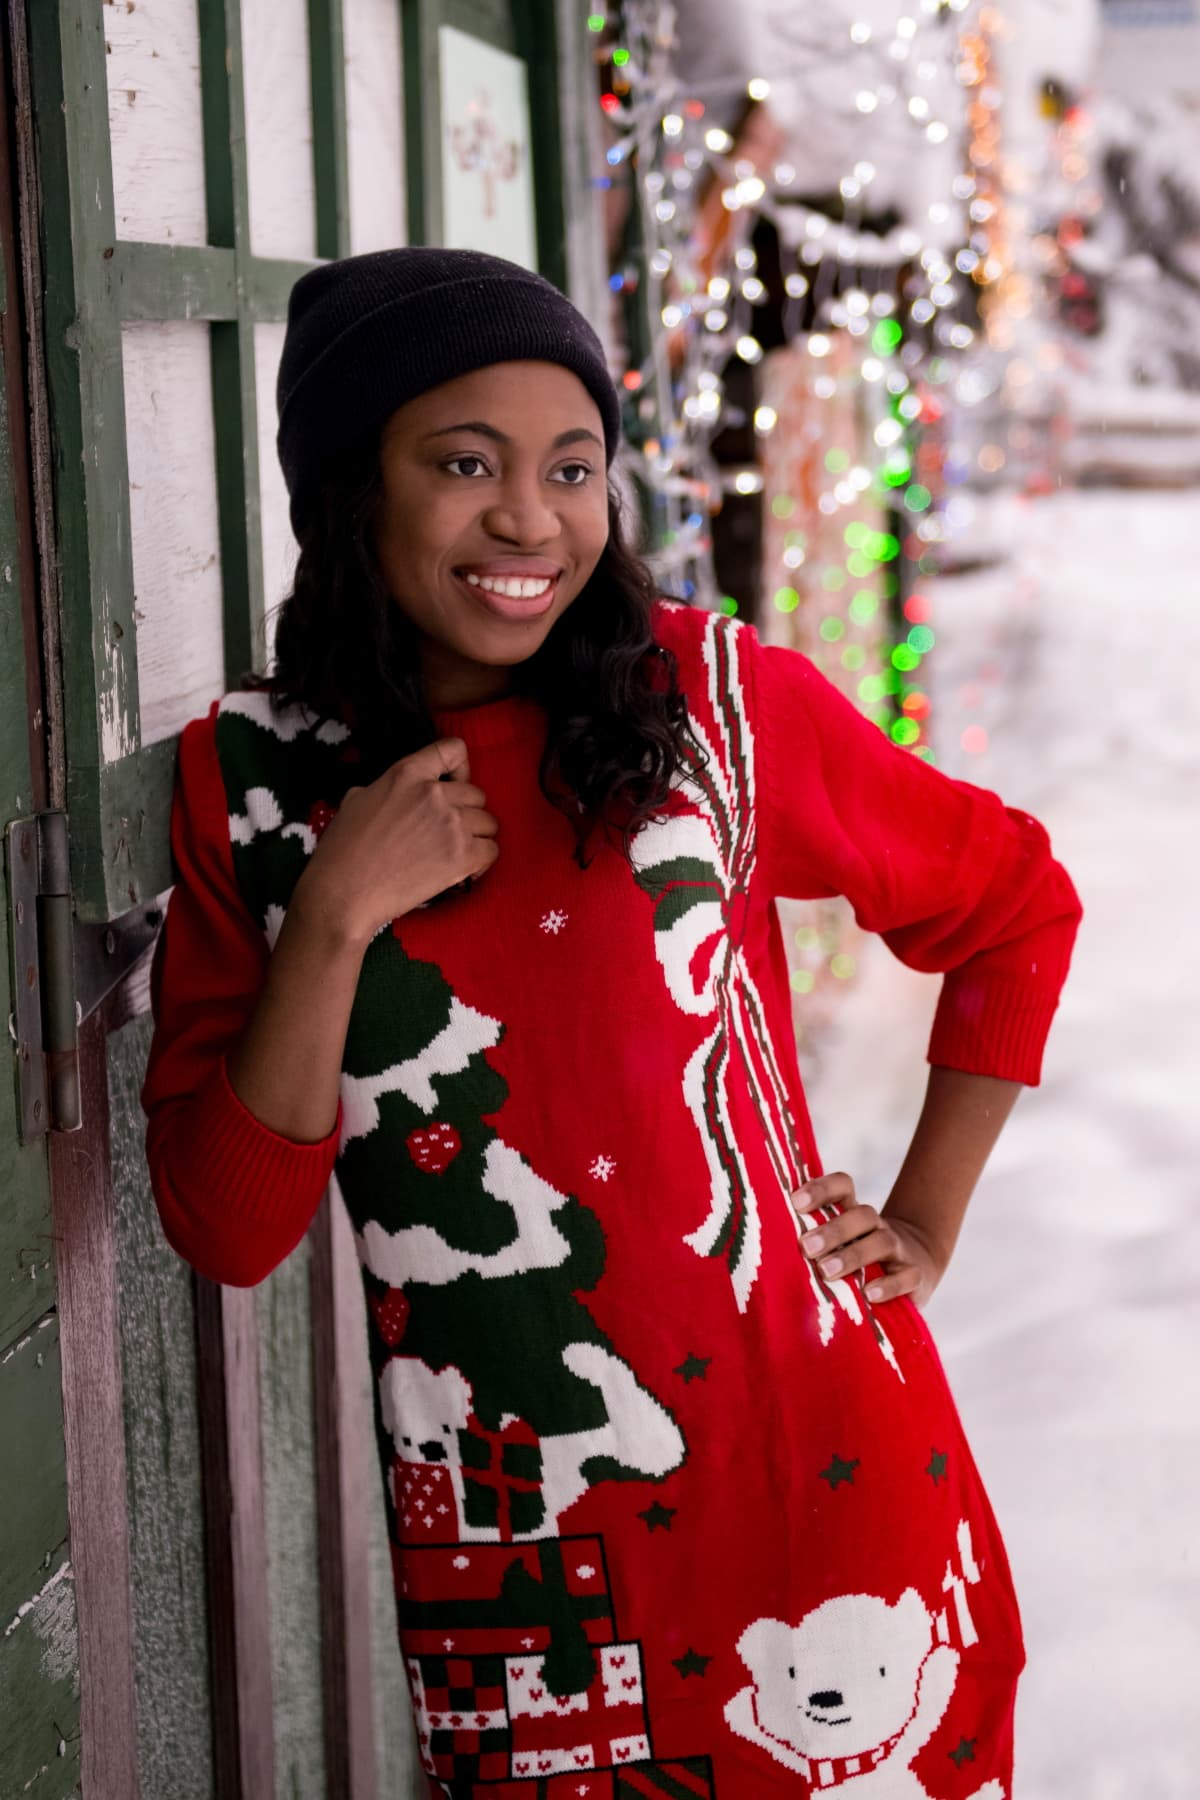 Ugly Christmas Sweater Outfit | Having so much fun in the snow rocking this ugly Christmas sweater dress. All about staying warm and comfortable this season! #uglysweater #xmassweater #sweaterdress